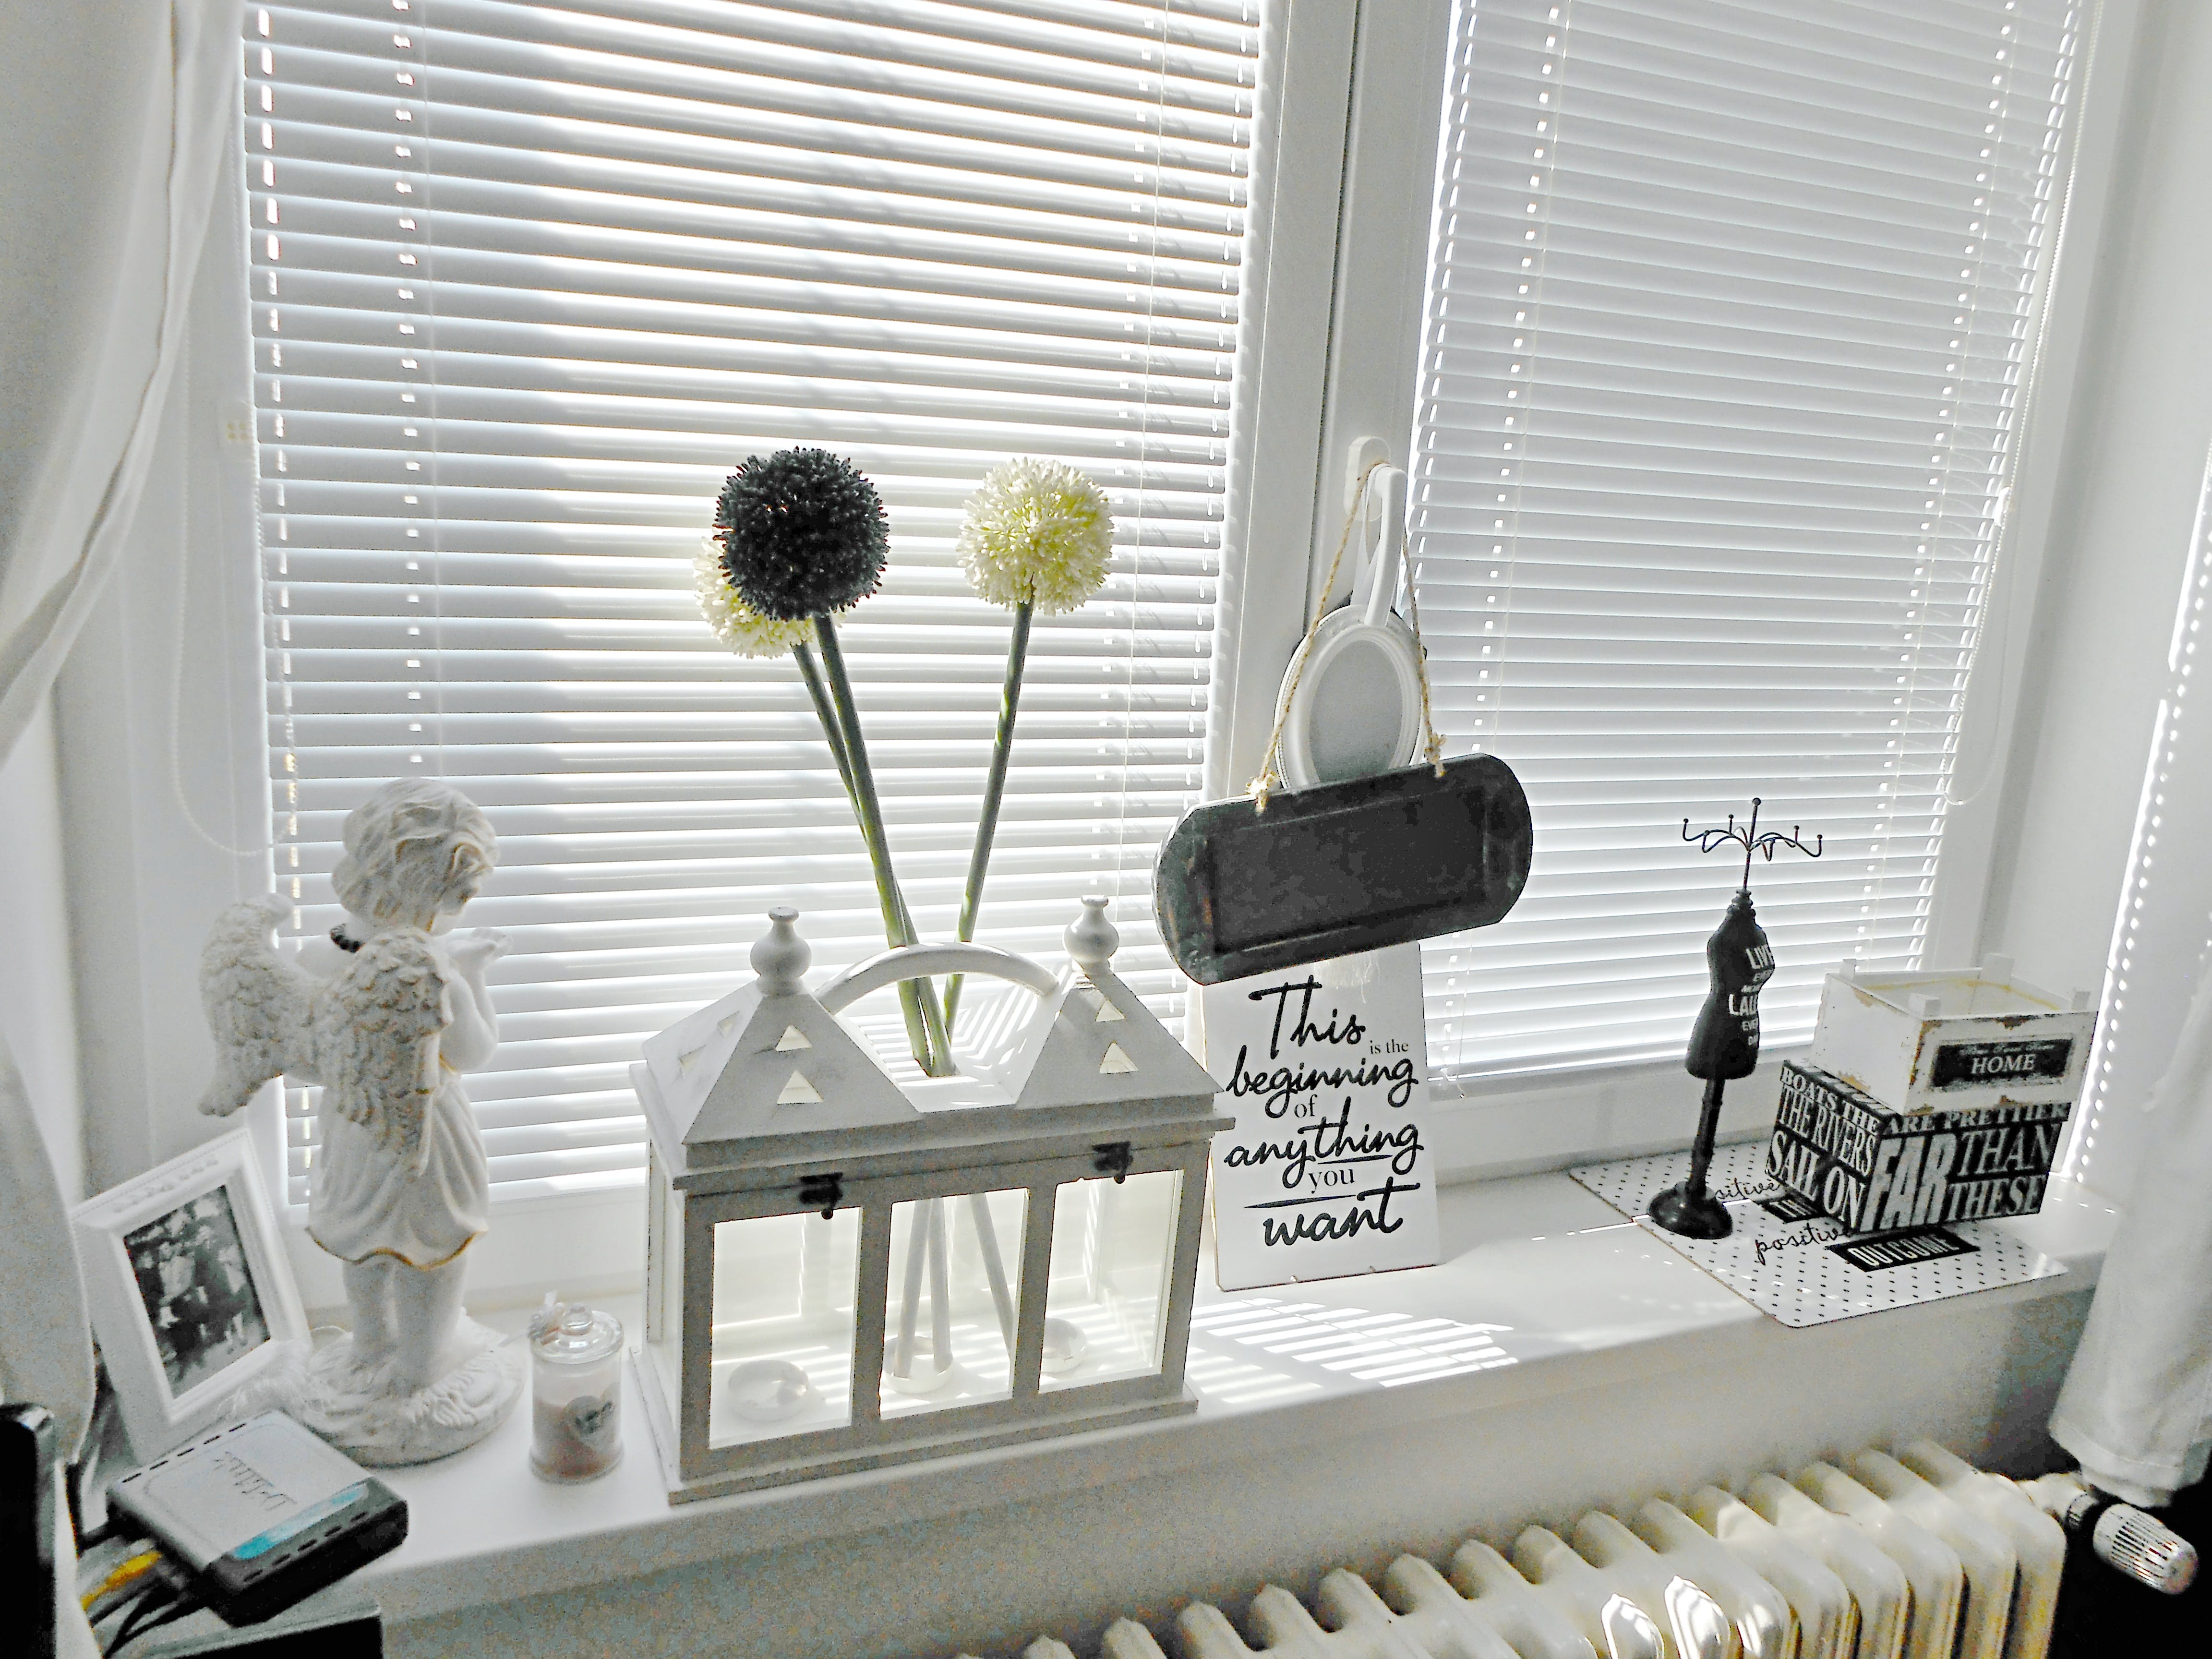 Free stock photo of Window white decoration in my home